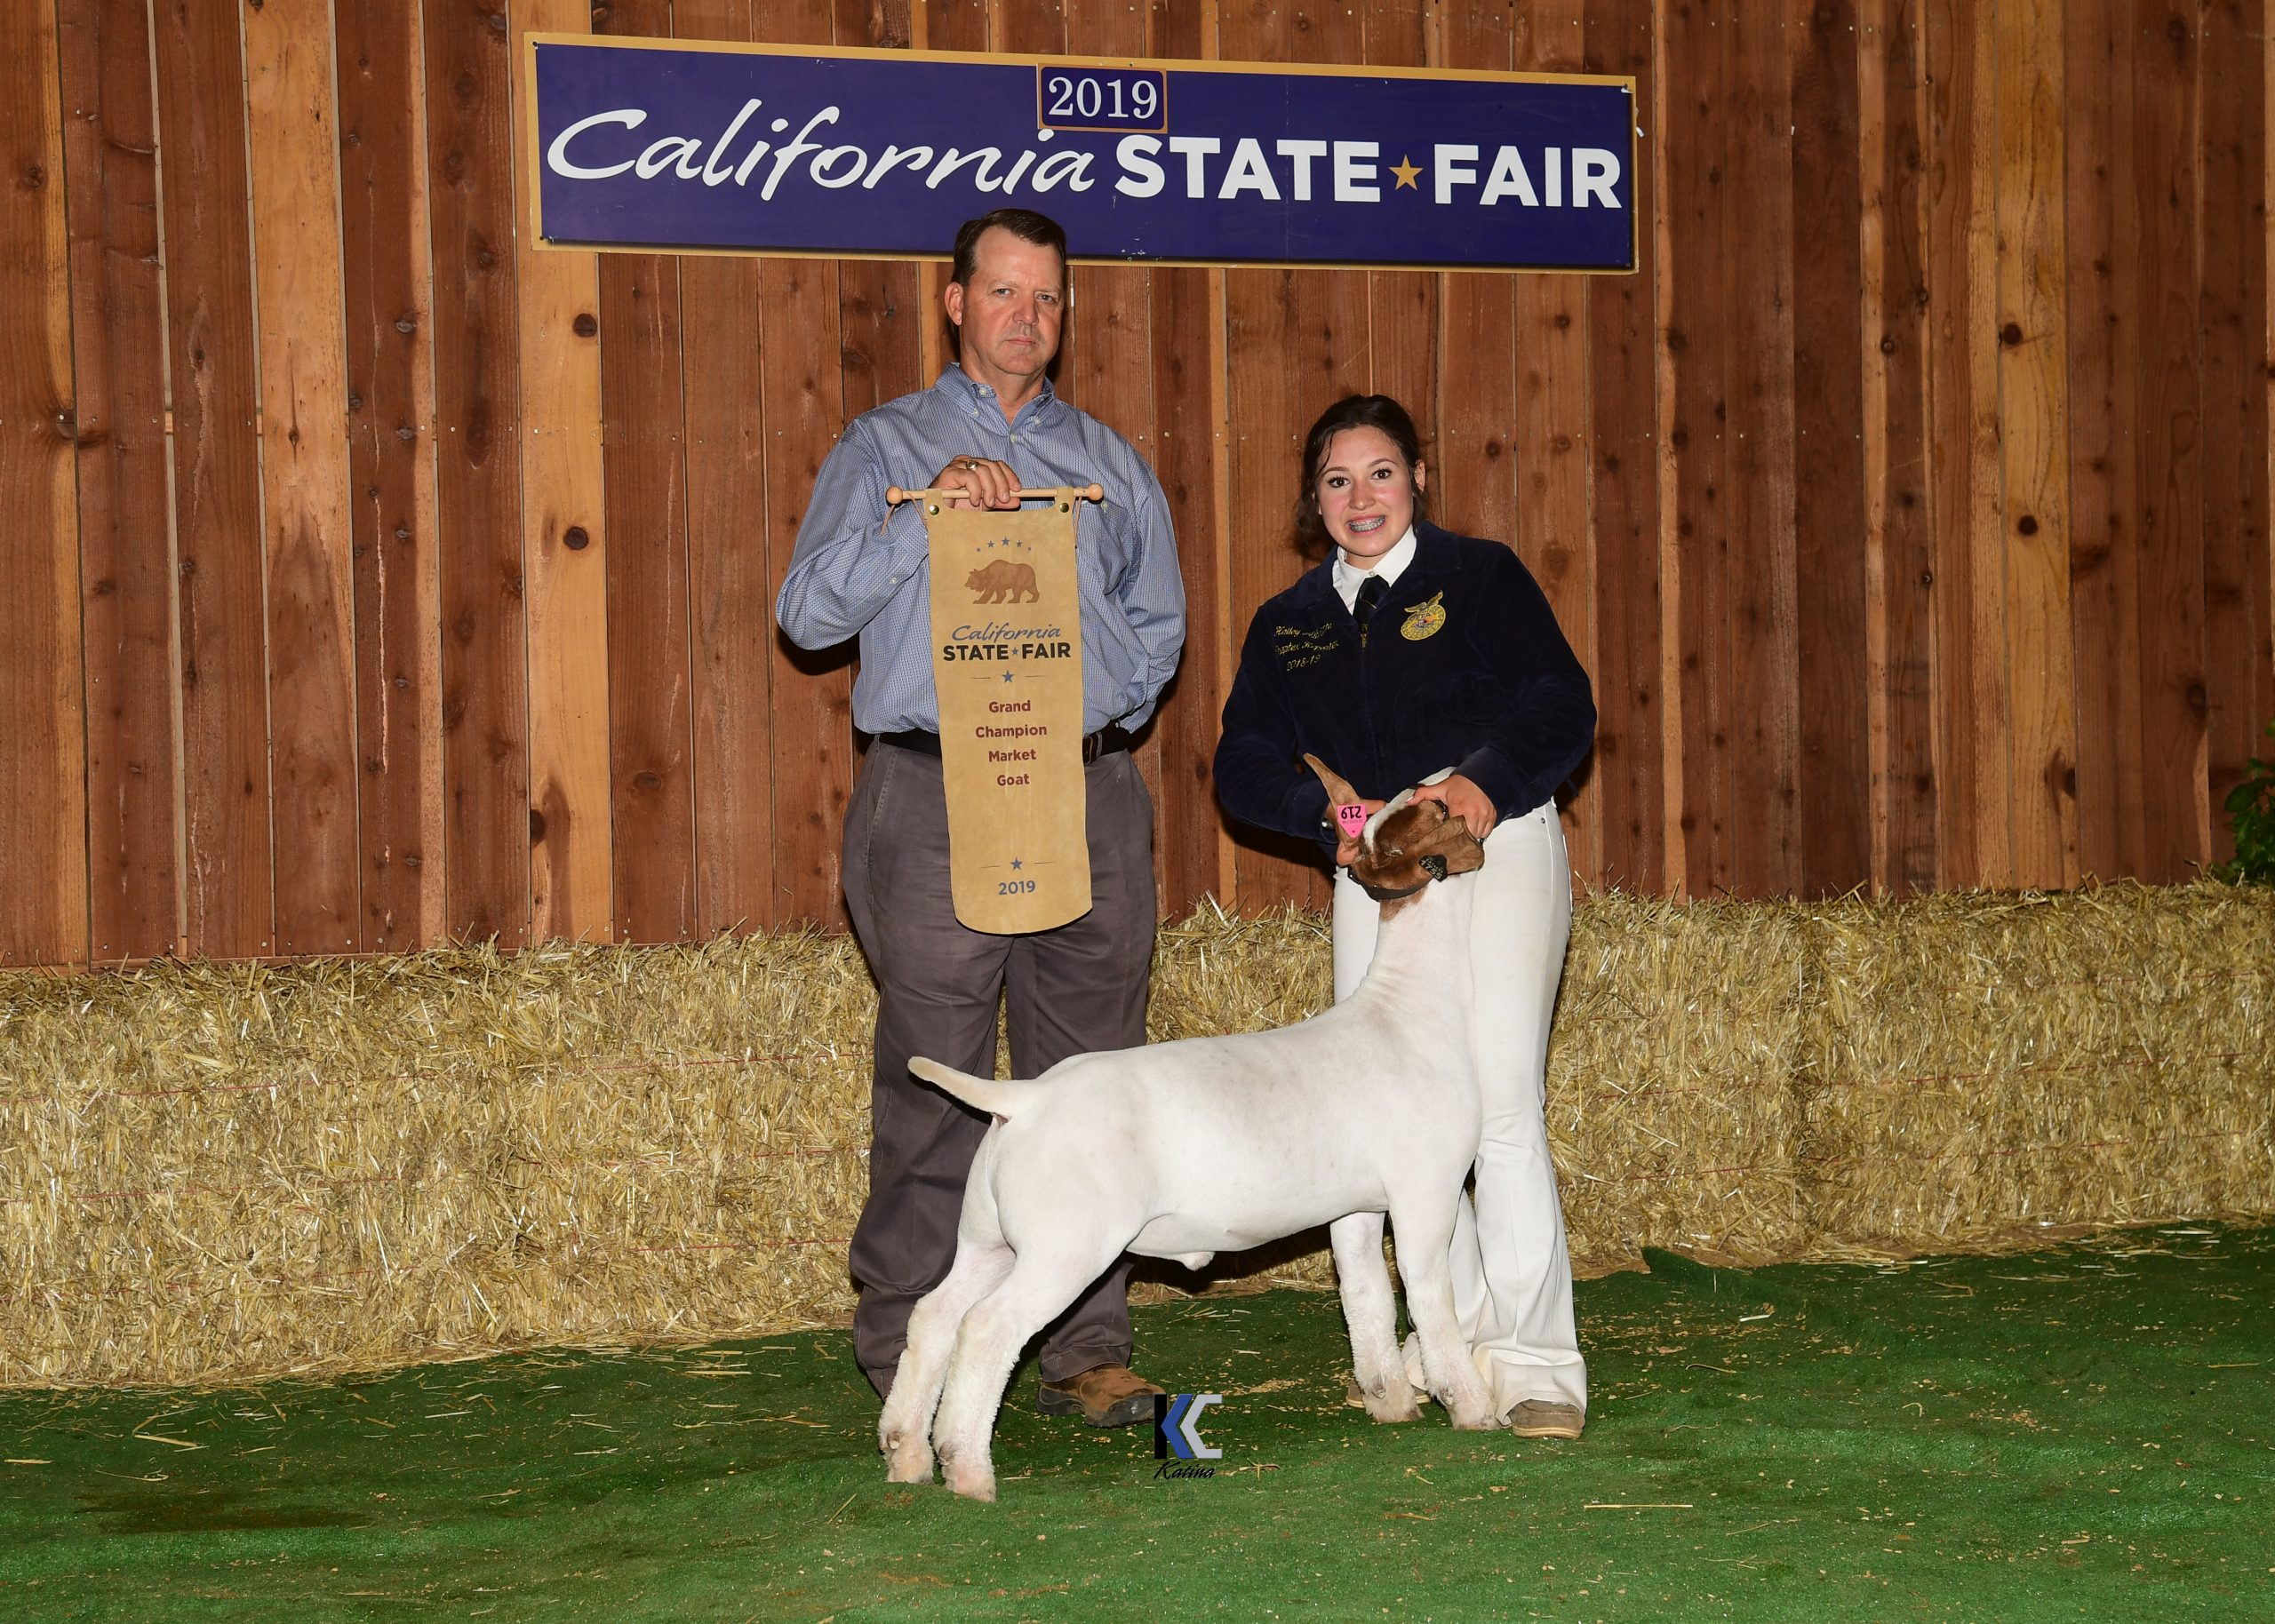 Grand Champion Market Goat with Exhibitor and Judge